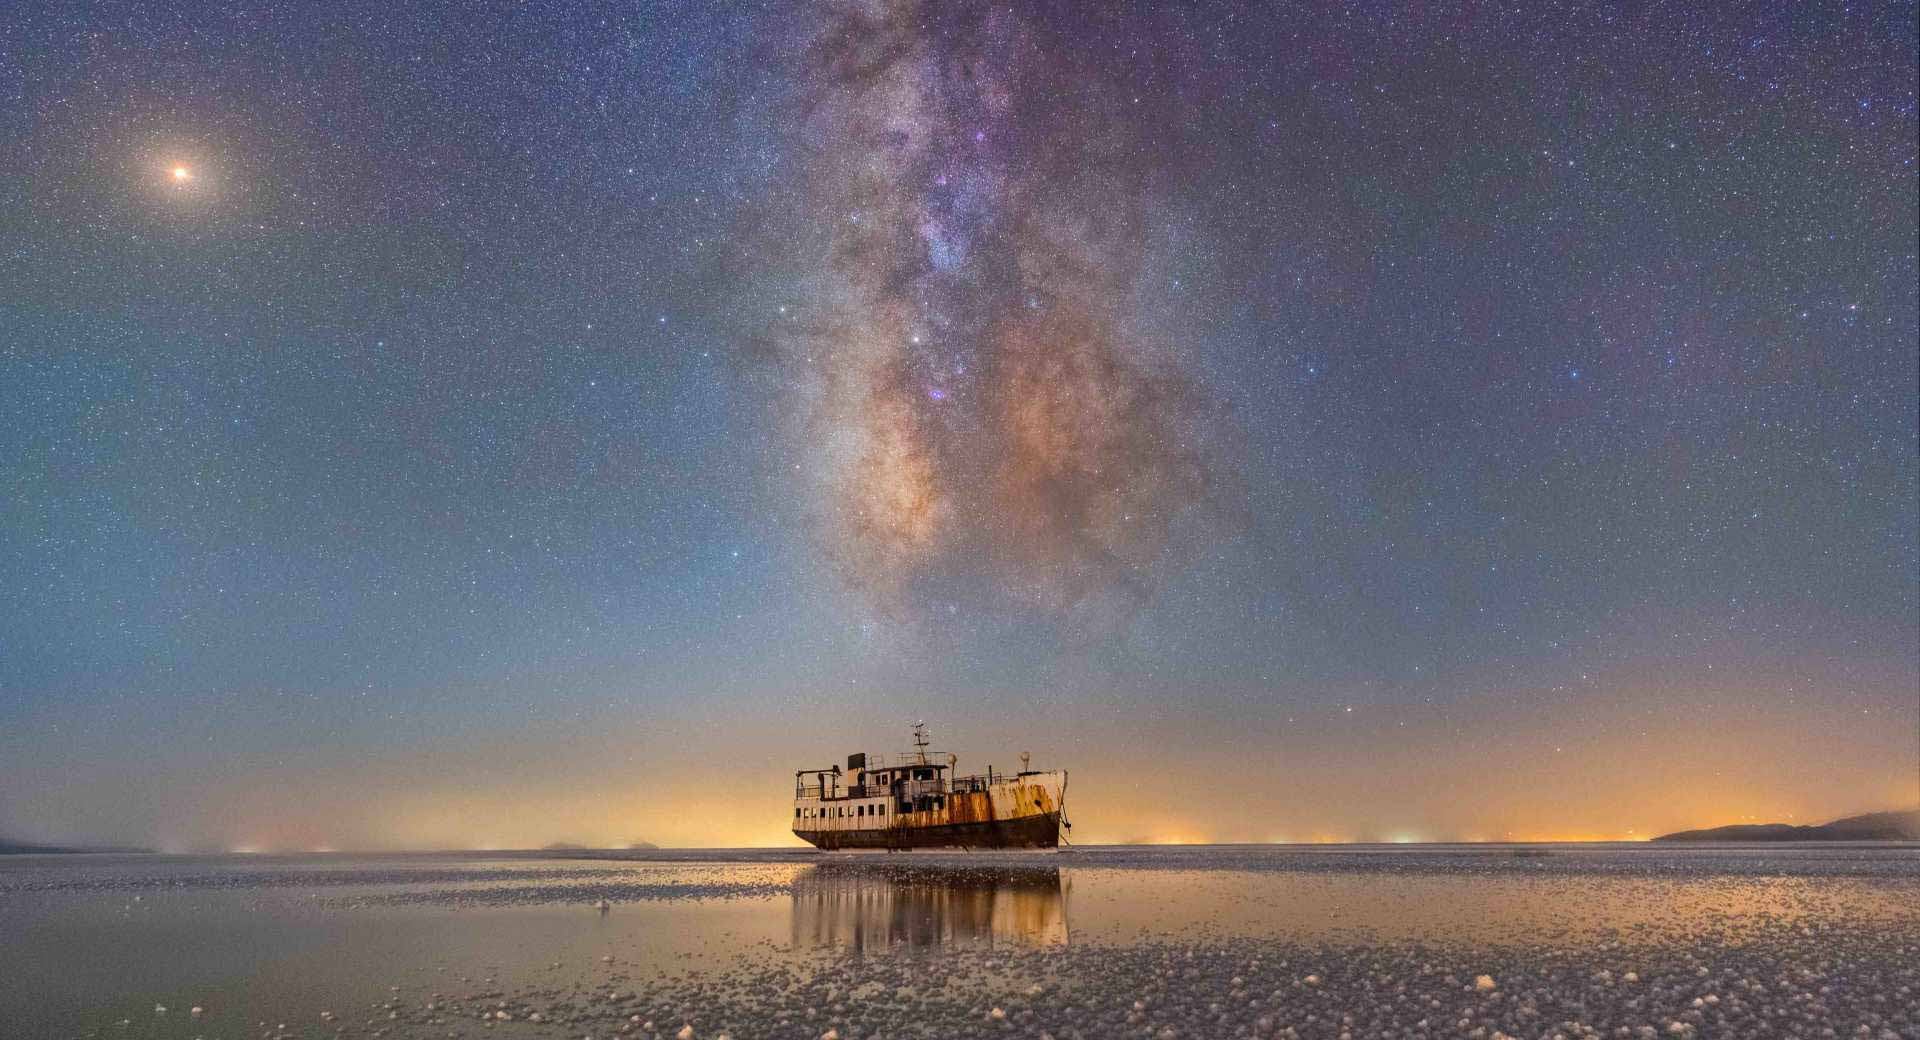 A boat in the middle of an arctic ocean, surrounded by a star-filled blue and purple sky